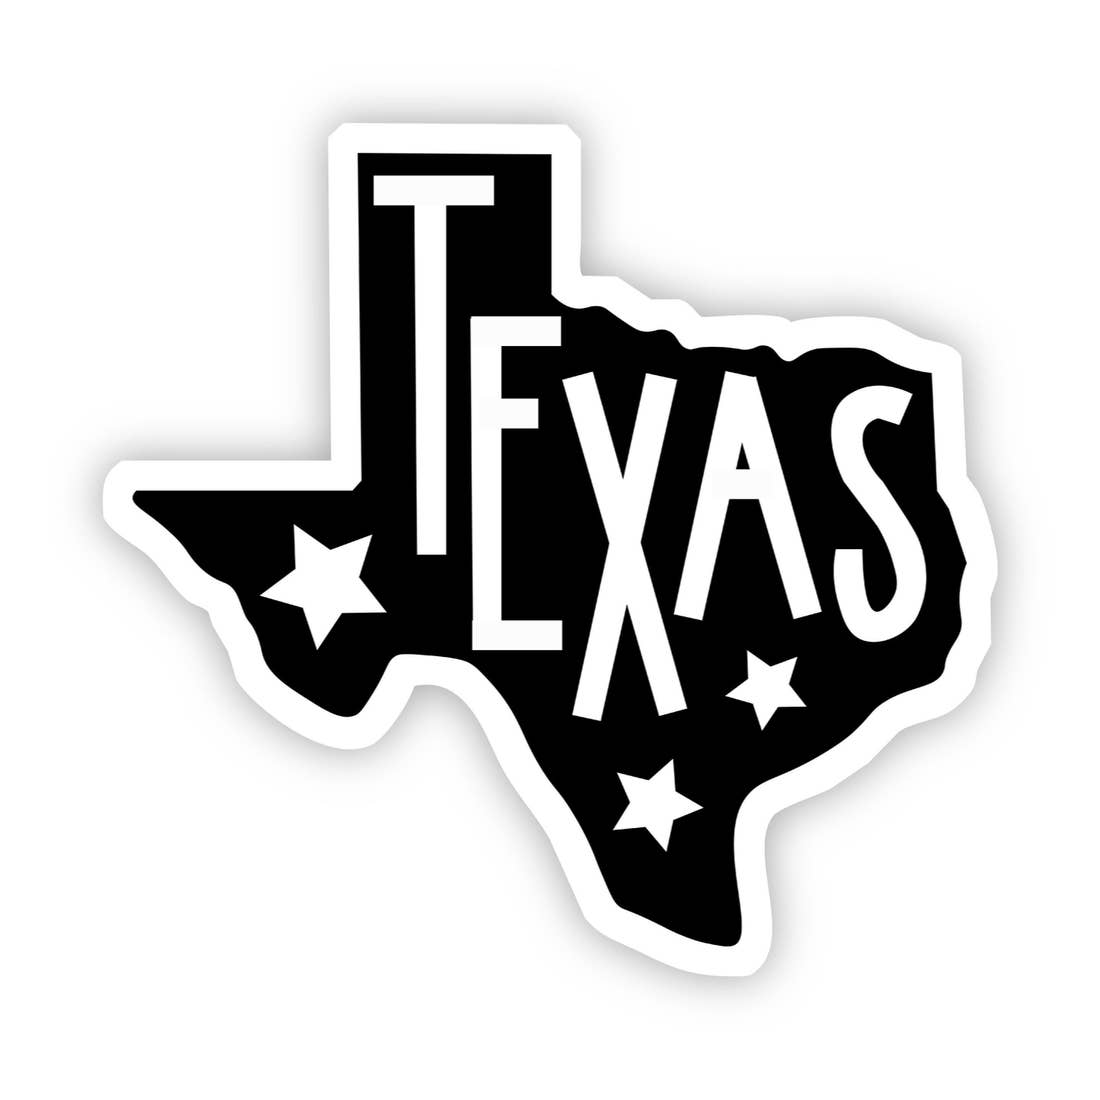 Texas With Stars Sticker